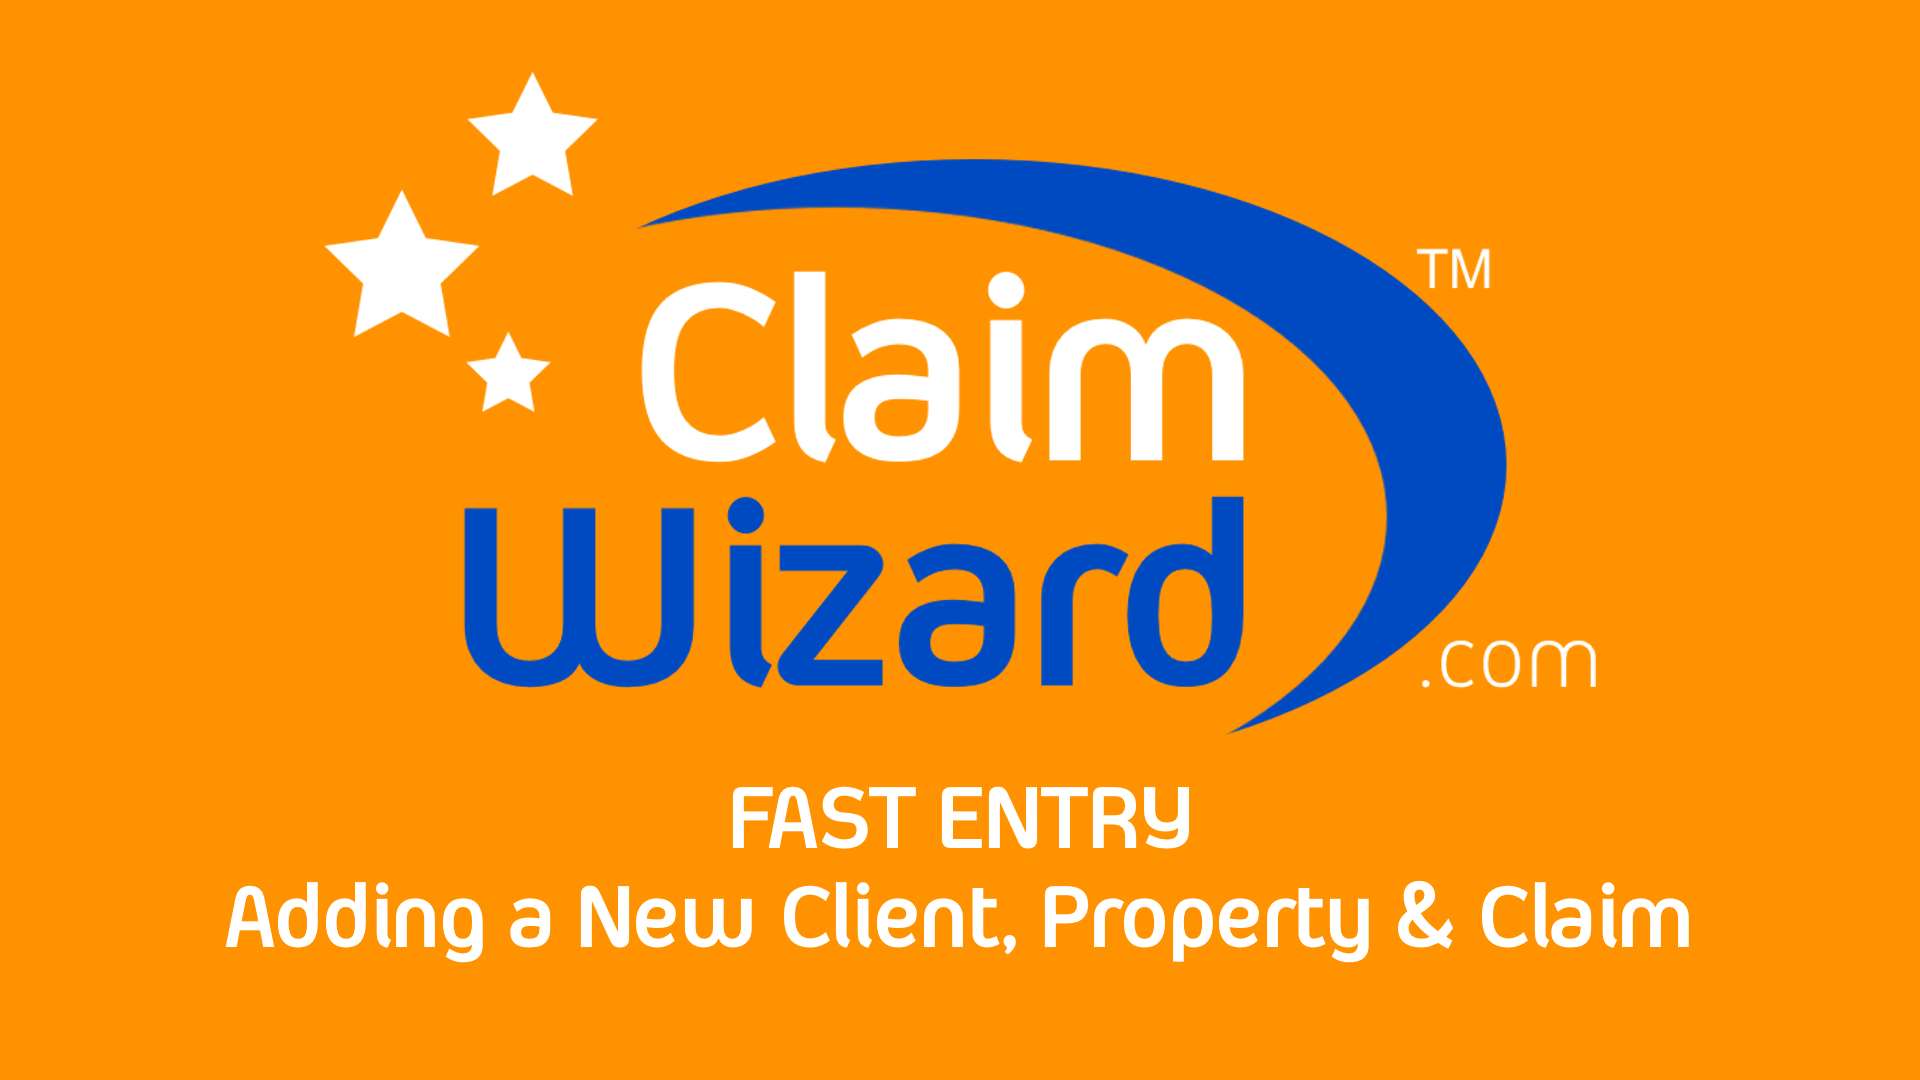 Fast Entry New Client Property & Claim